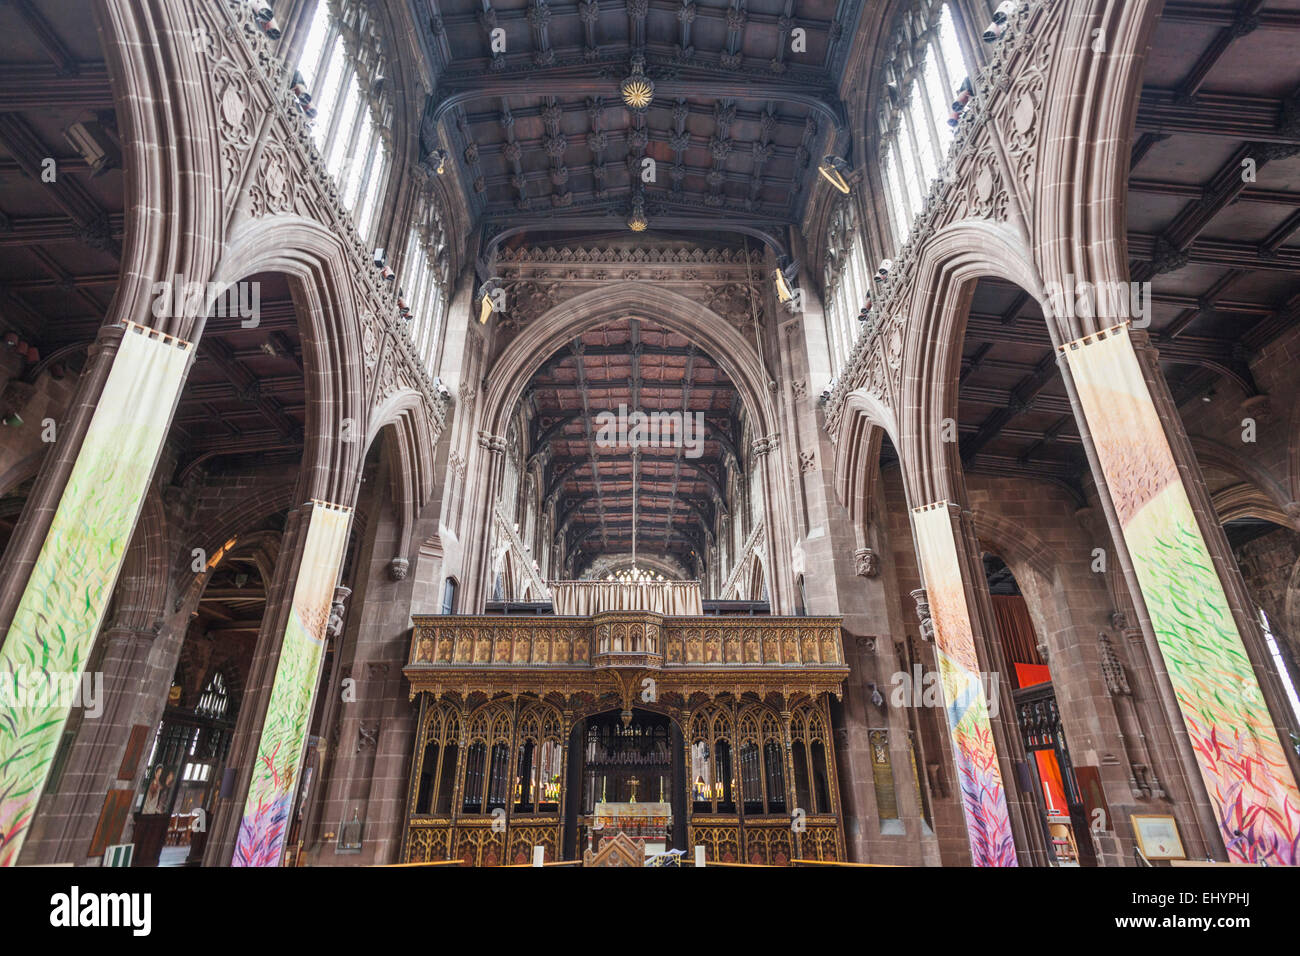 England, Manchester, city, Manchester Cathedral, Interior View - Stock Image